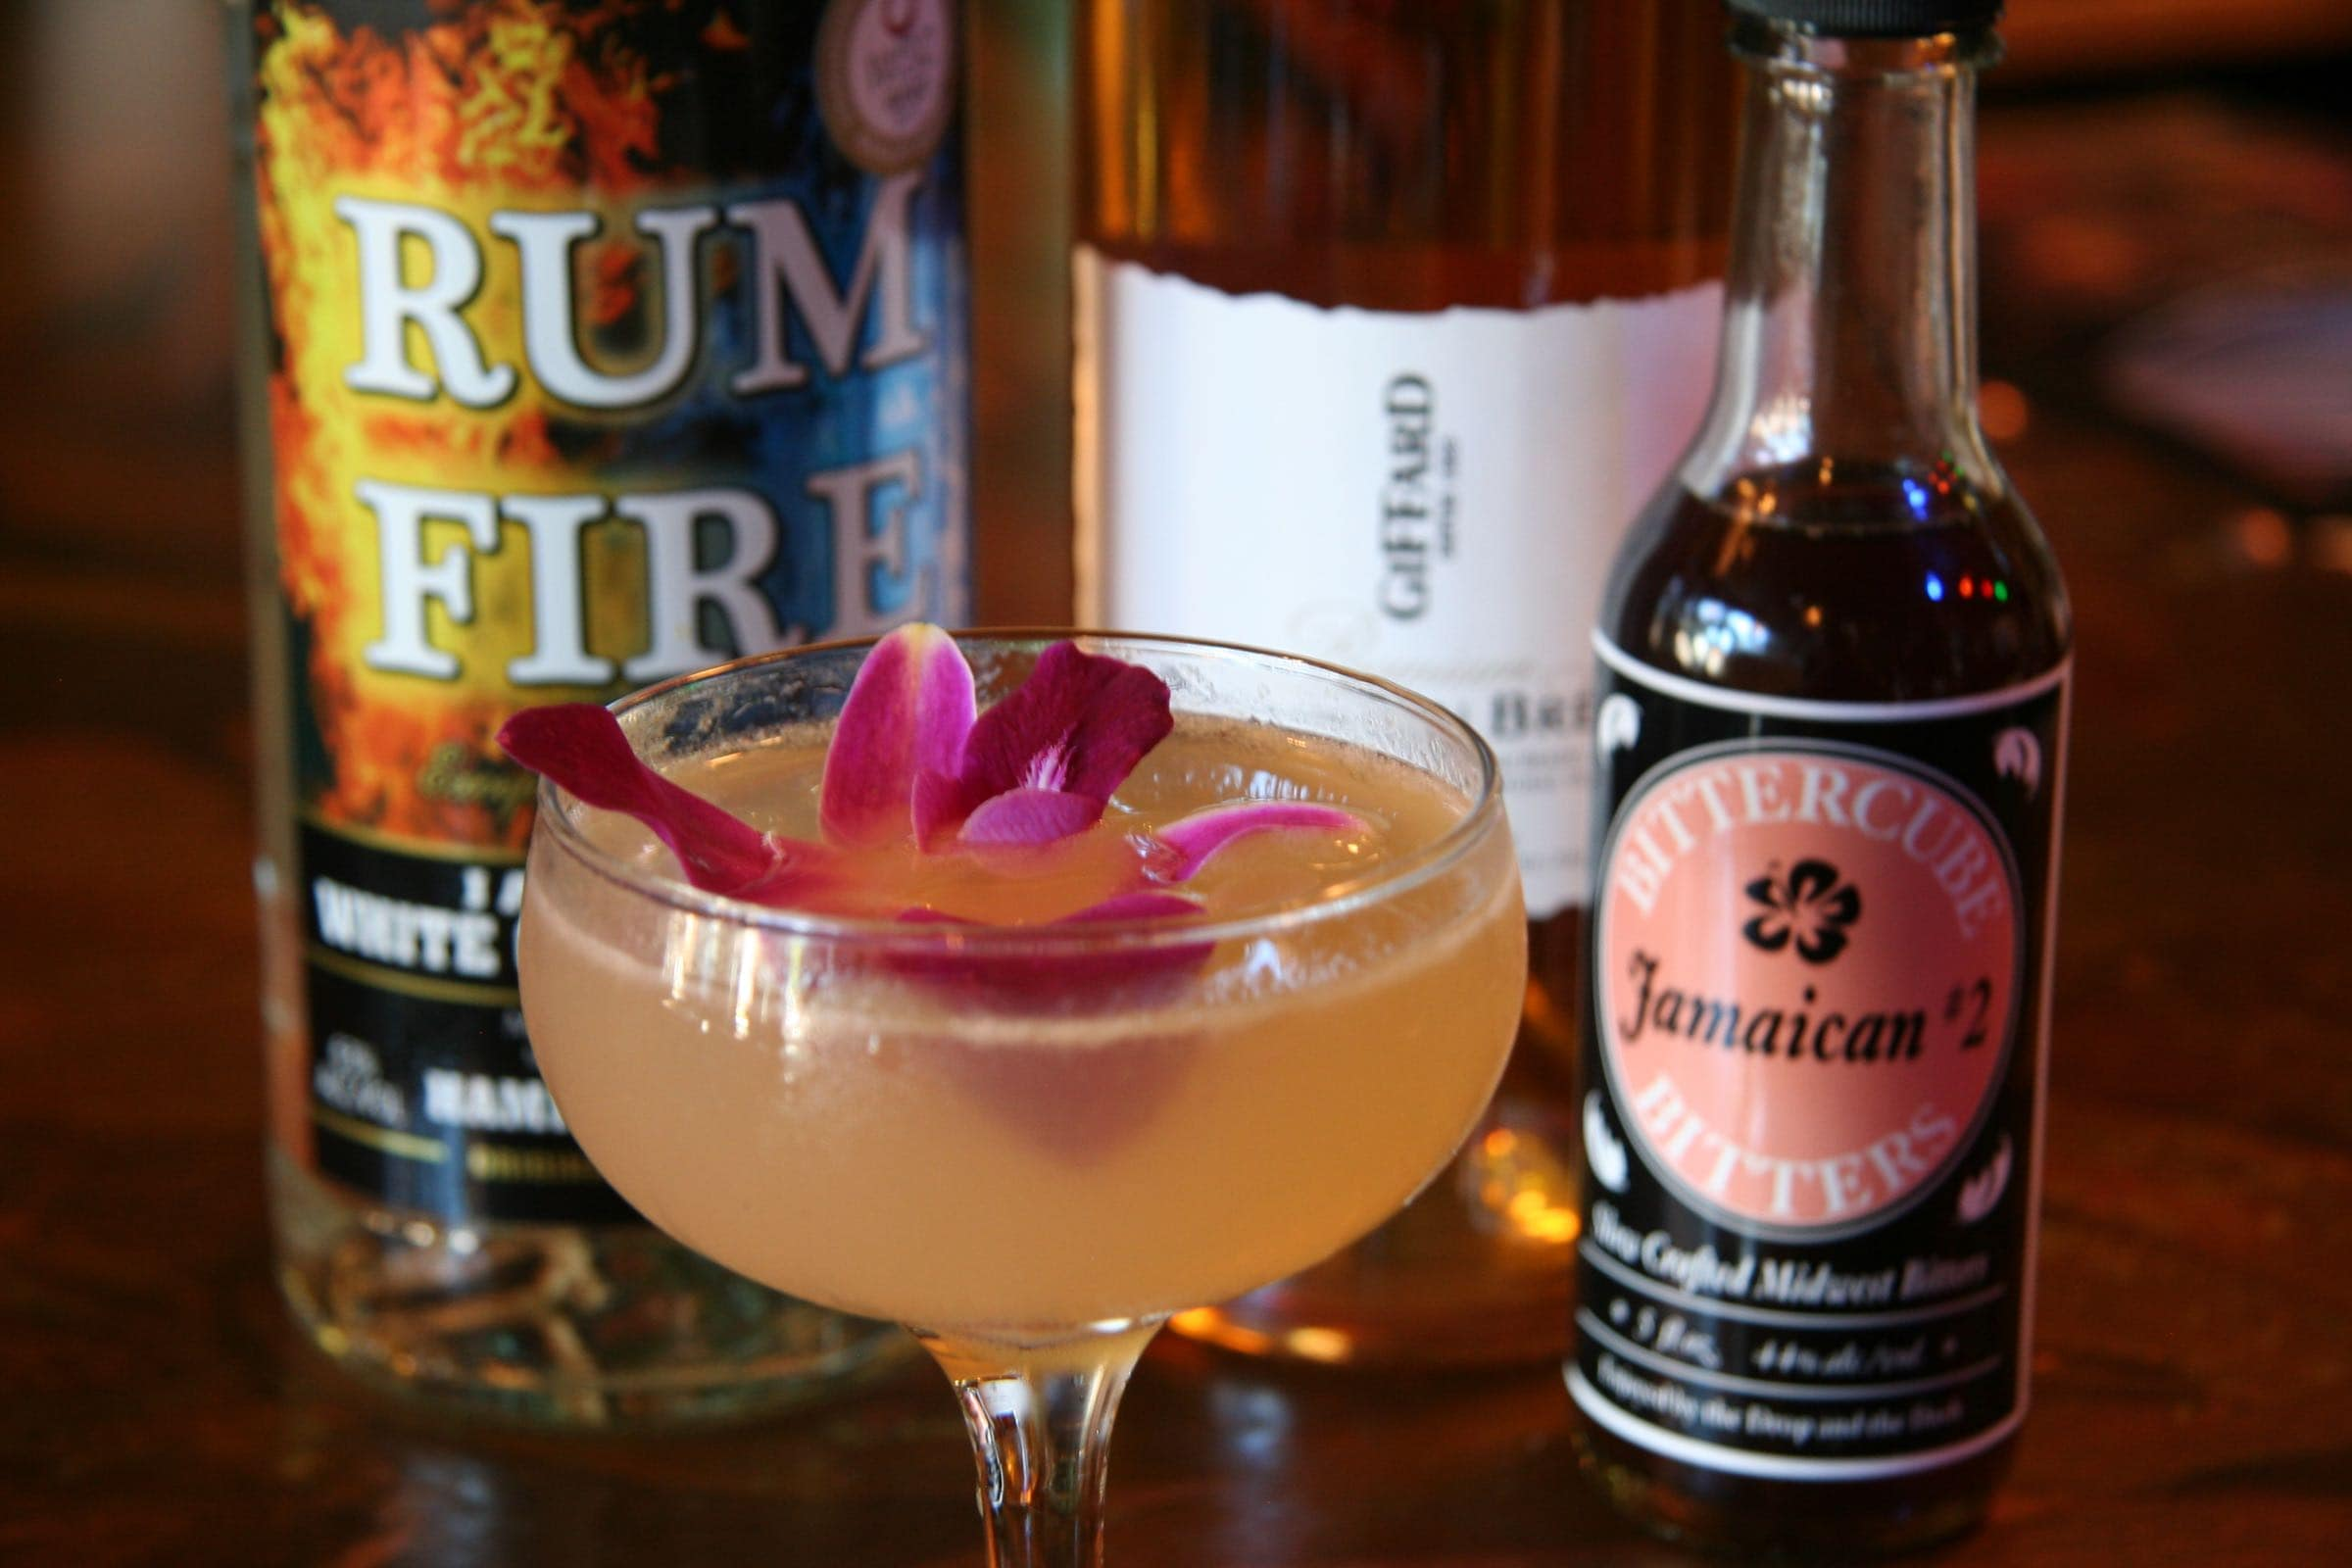 The Trelawny Daiquiri